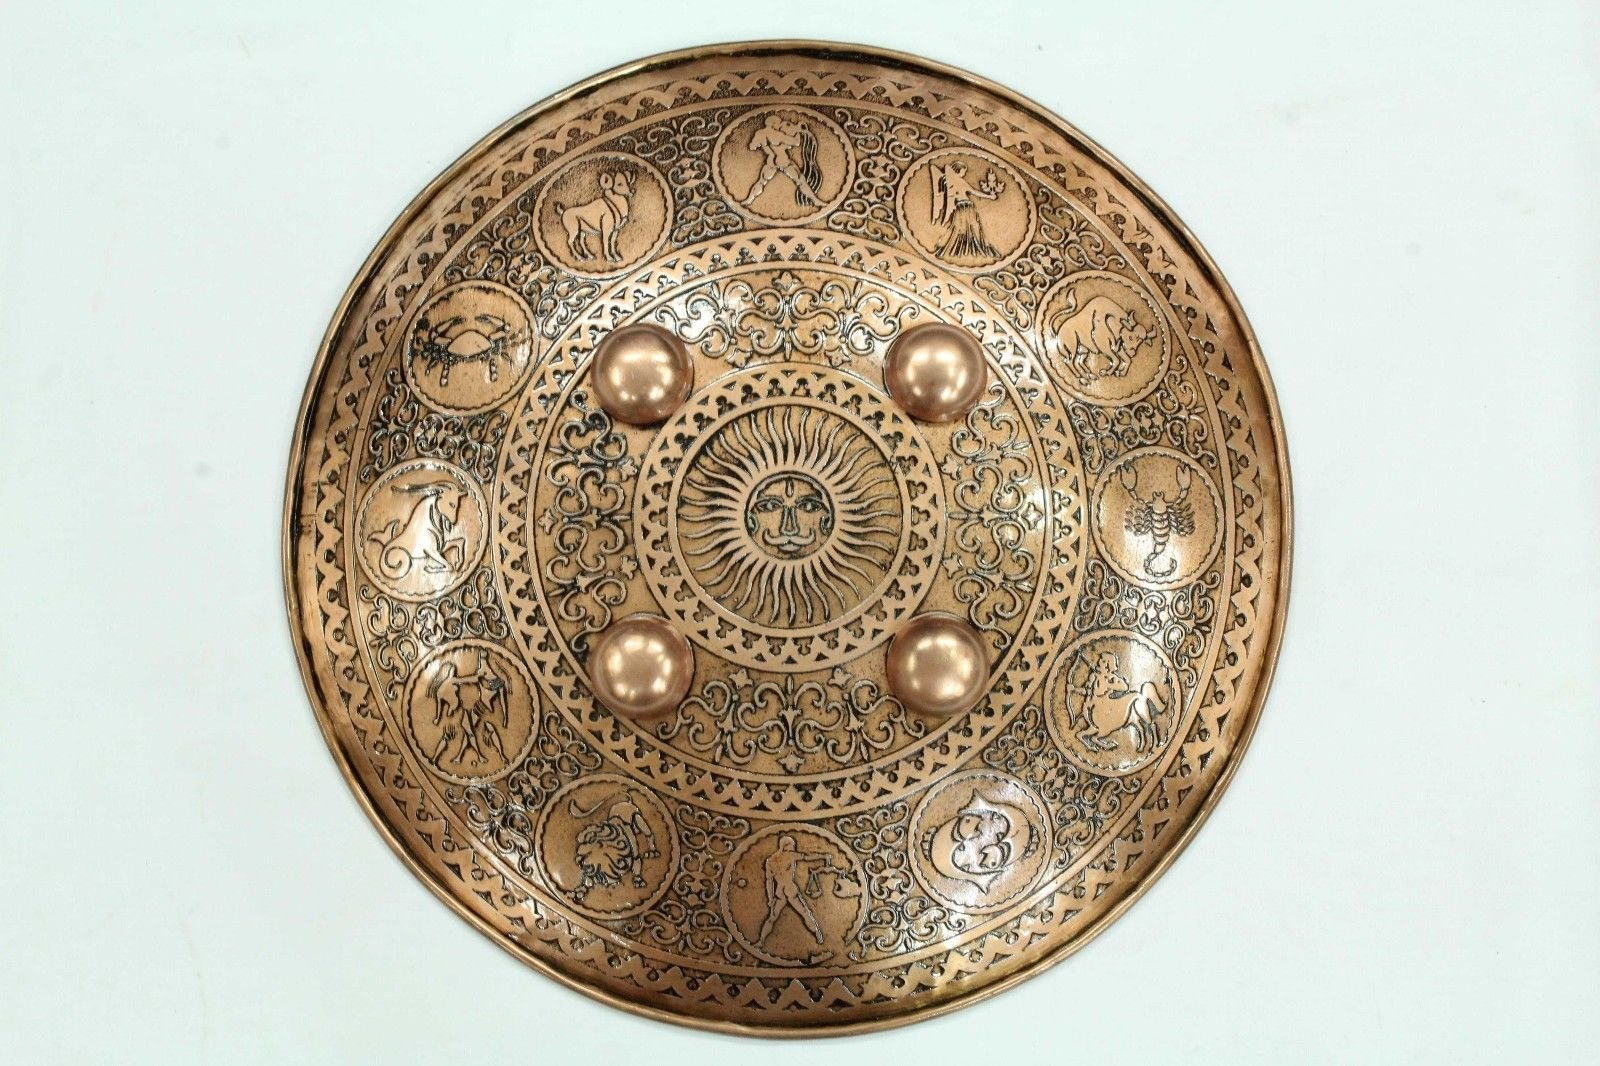 Rajashan Gems Engraved sun signs symbols on Steel Battle Armory Shield Dhal copper color 15'